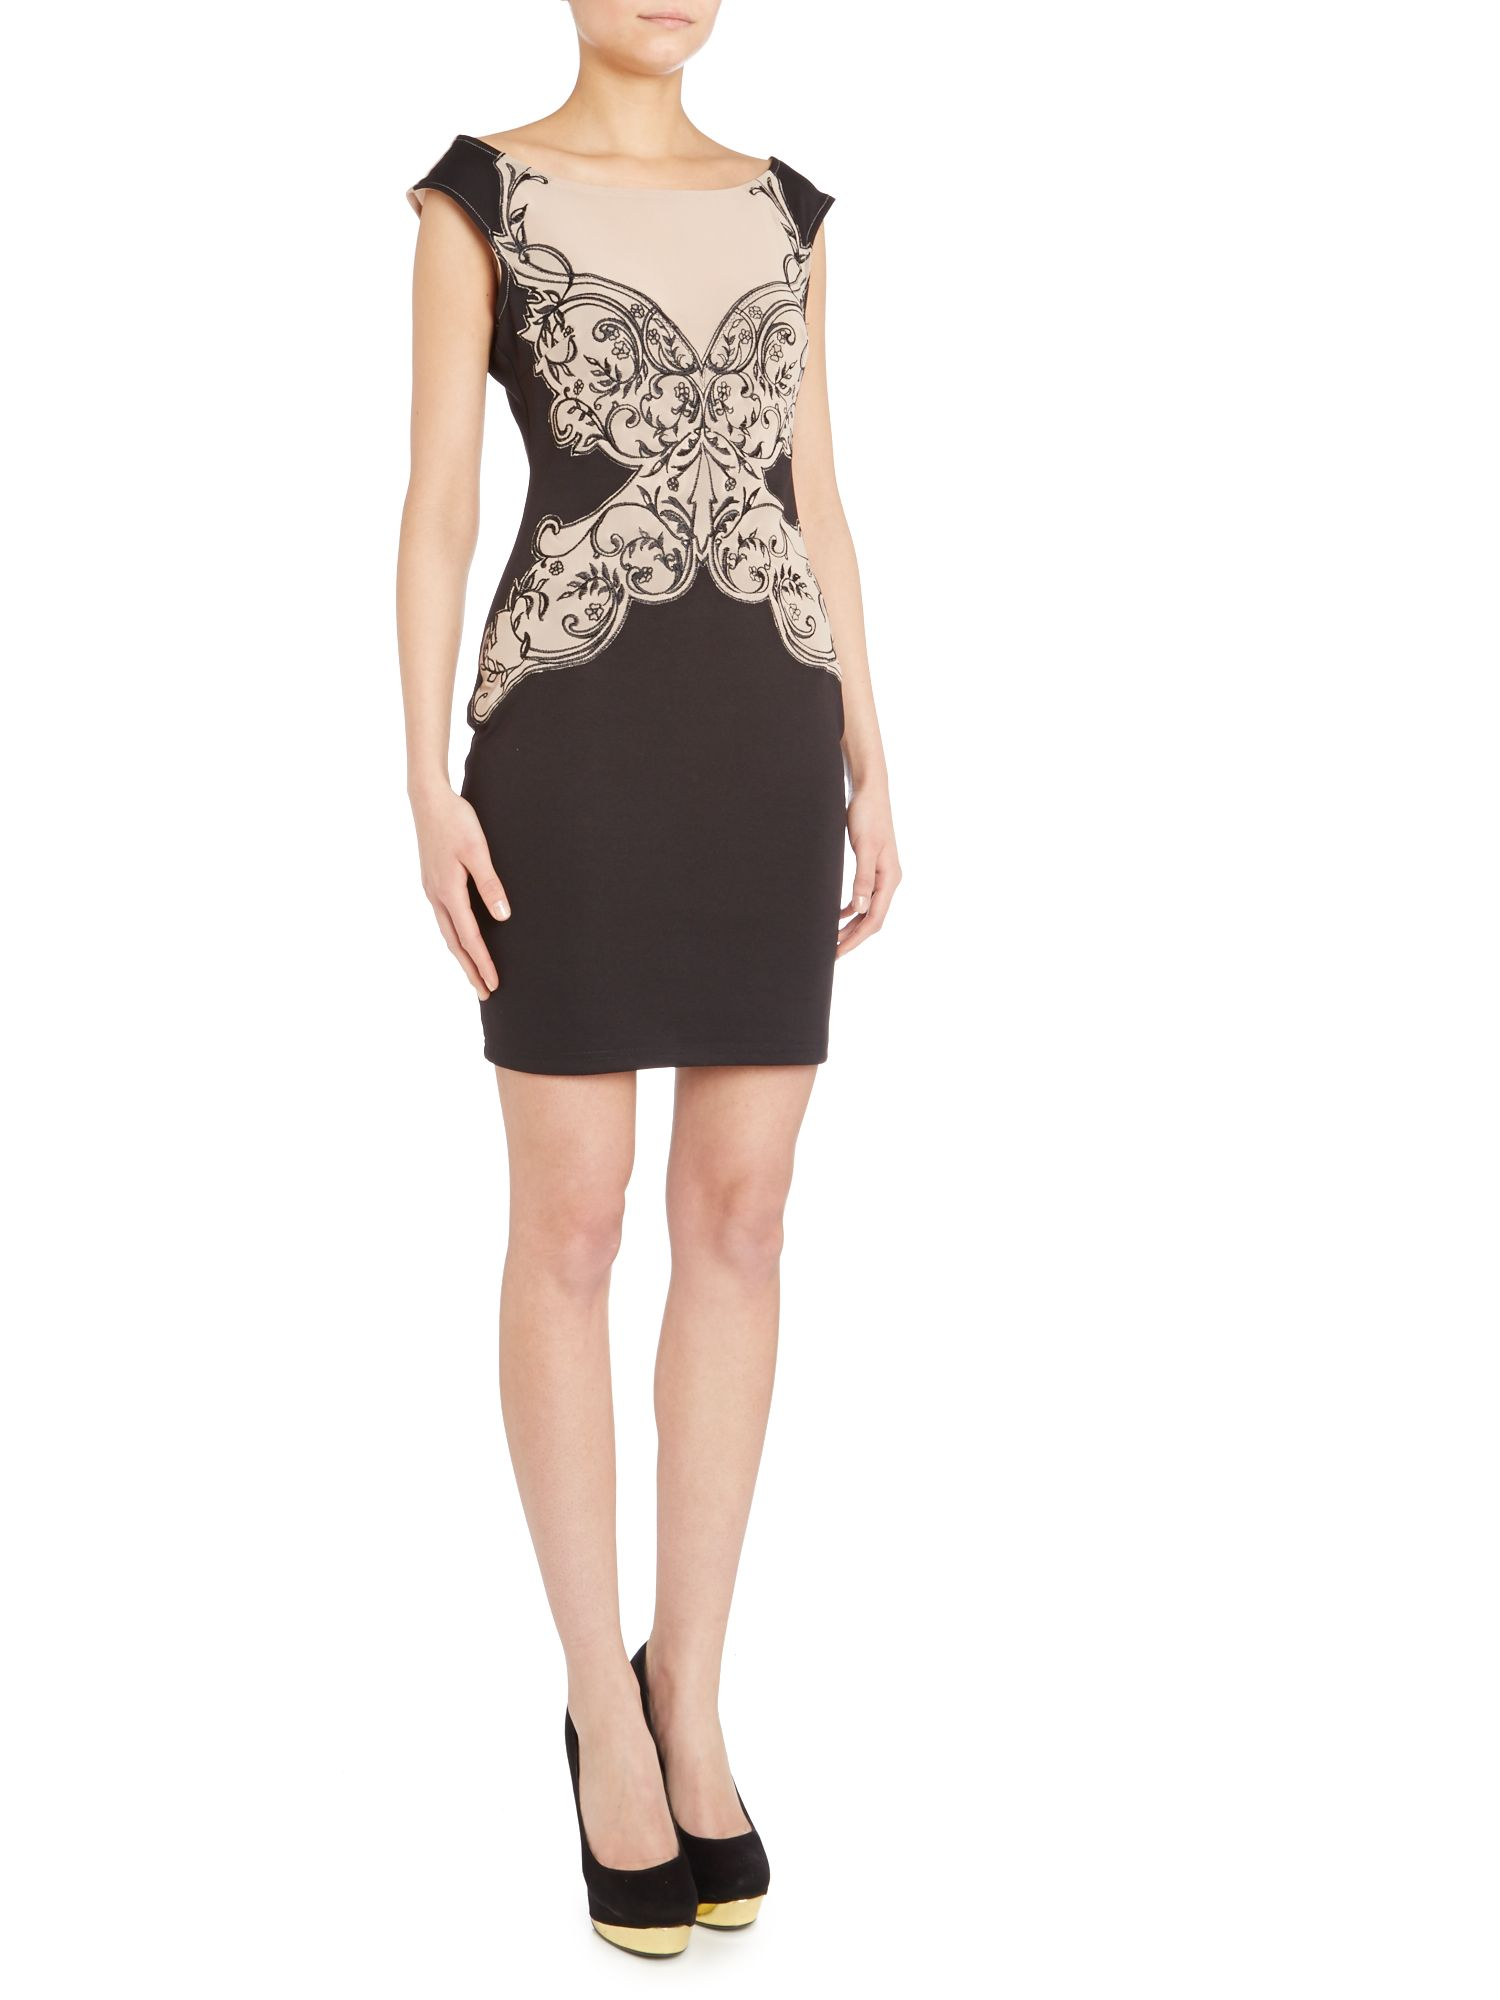 Sheer top lace bodycon dress